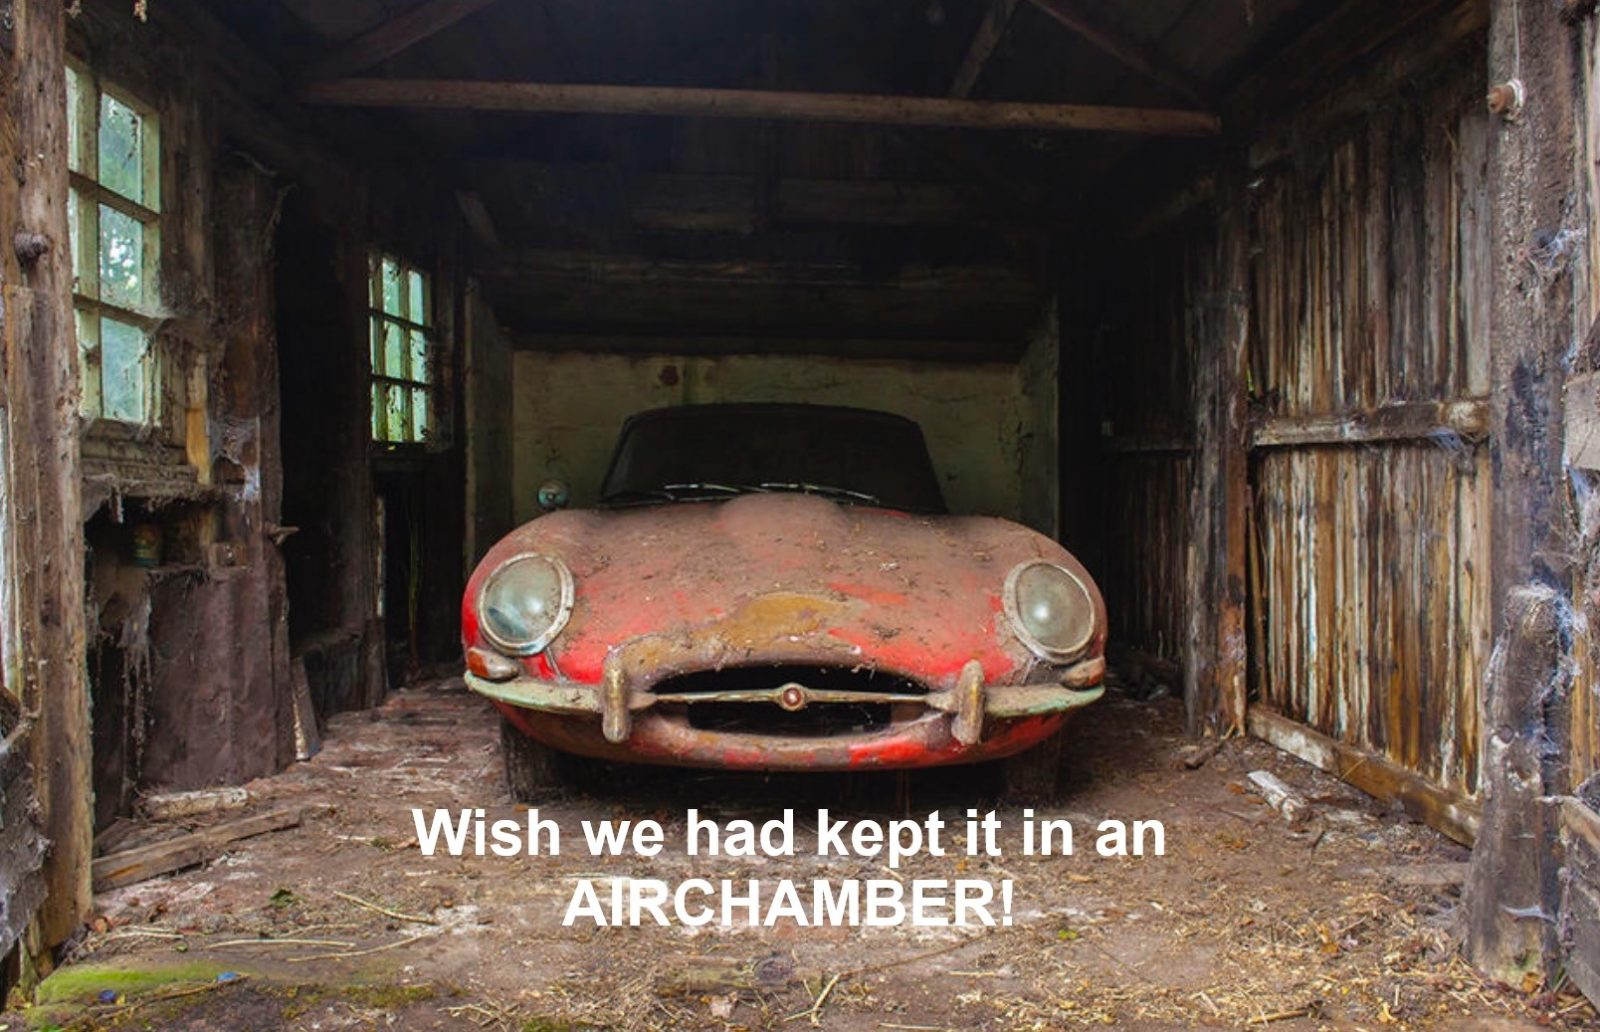 The result of car storage without an Airchamber!